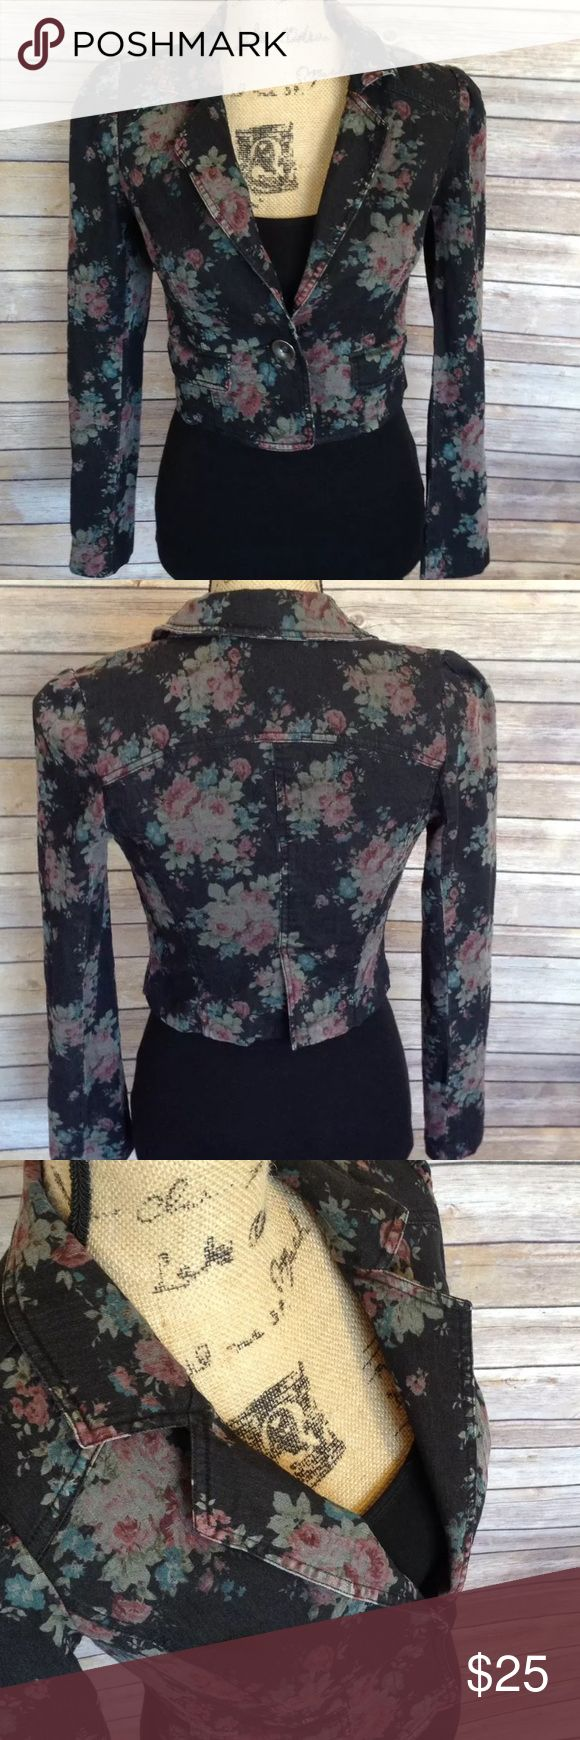 "Anthropologie Free People black floral blazer 0 Pre-owned Anthropologie Free People women's black floral single button blazer jacket. Very good used condition. No rips holes or stains. Beautiful!   Measurements:  Armpit to armpit- 16""  Armpit to sleeve- 17 1/2""  Length- 18""   I ship fast! Pay before 4:30pm Monday thru Friday and I will ship the same day!  Thank you for looking!  Check out my other items! Free People Jackets & Coats Blazers"